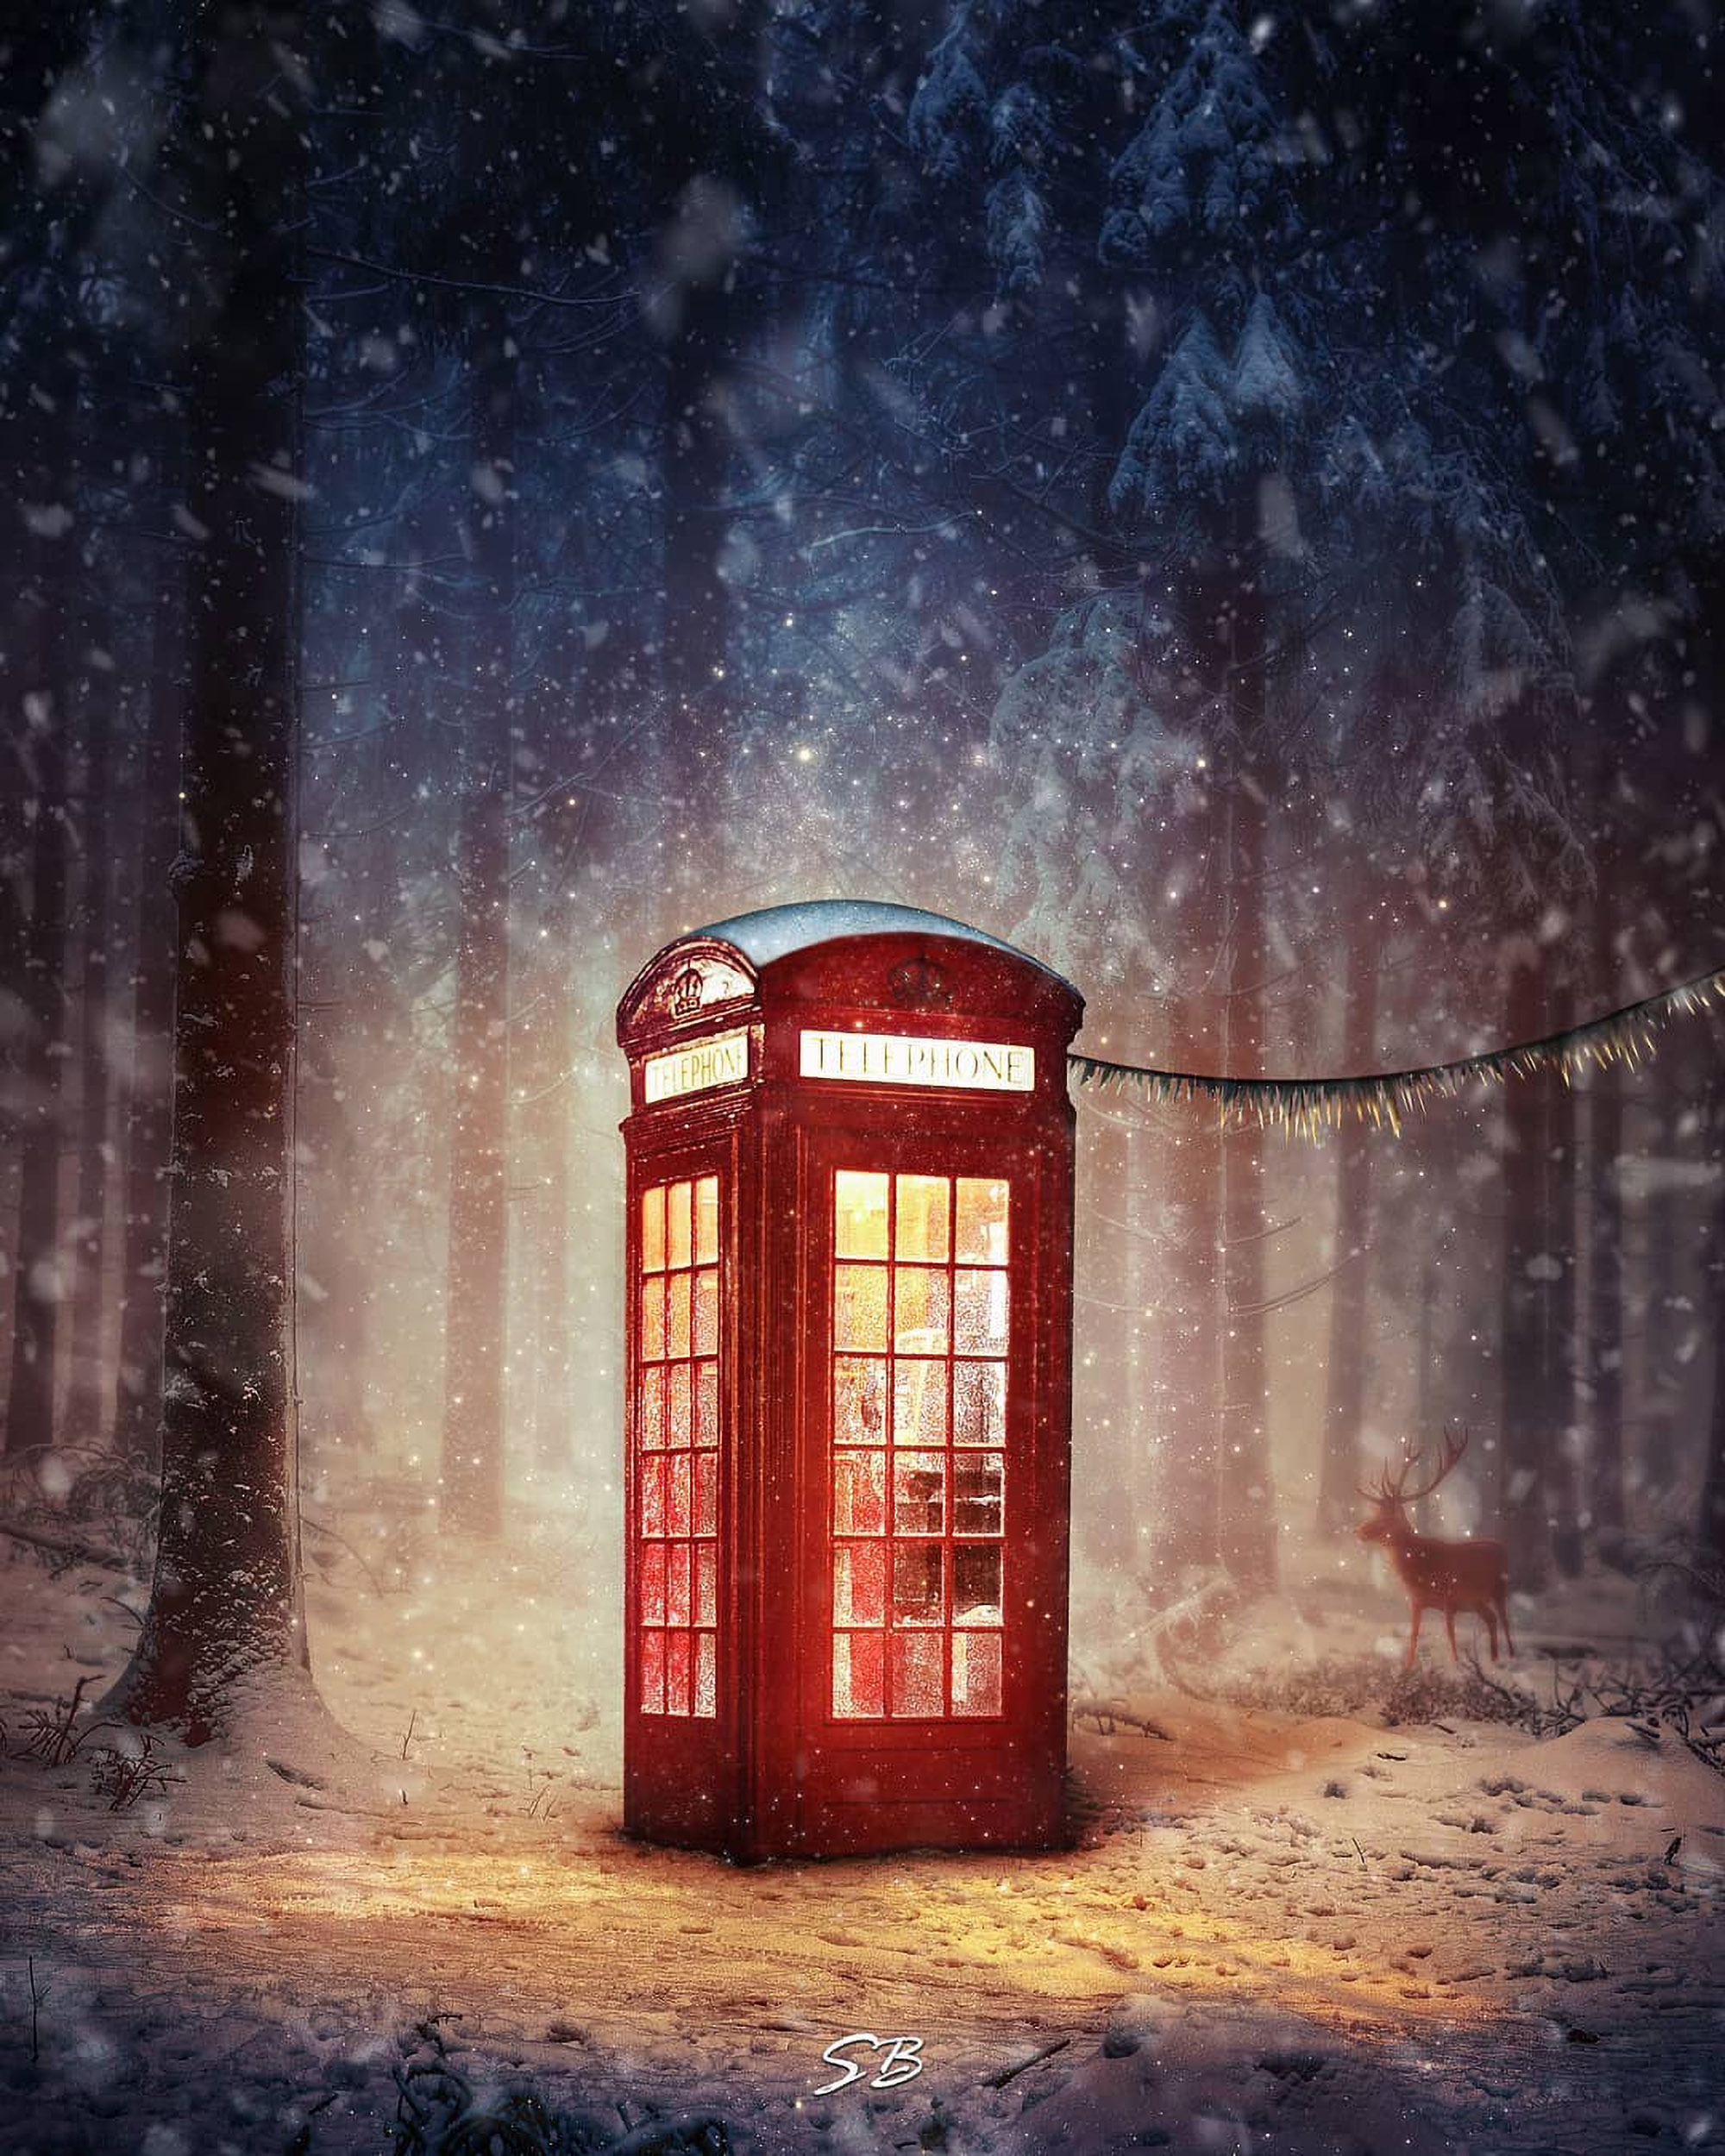 <p>The self-taught digital artist's British phone box, lit from within, has a magical quality. (@sb.editing__/Zenger News)</p>